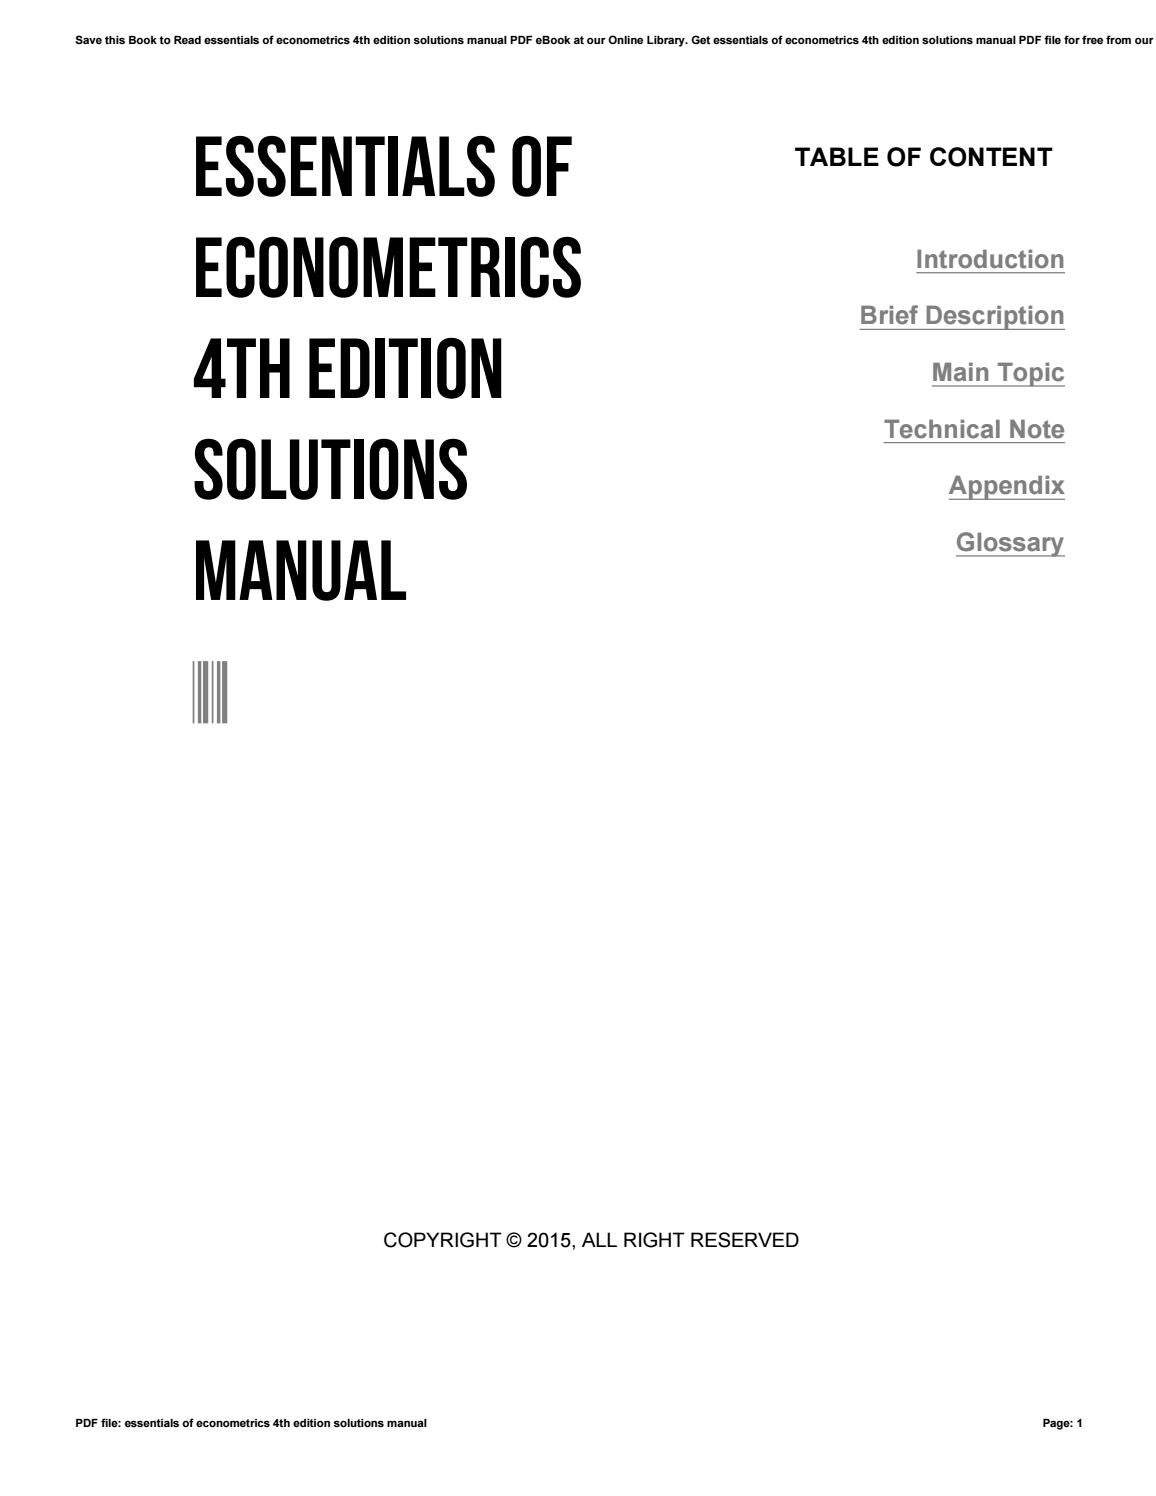 Essentials of econometrics 4th edition solutions manual by